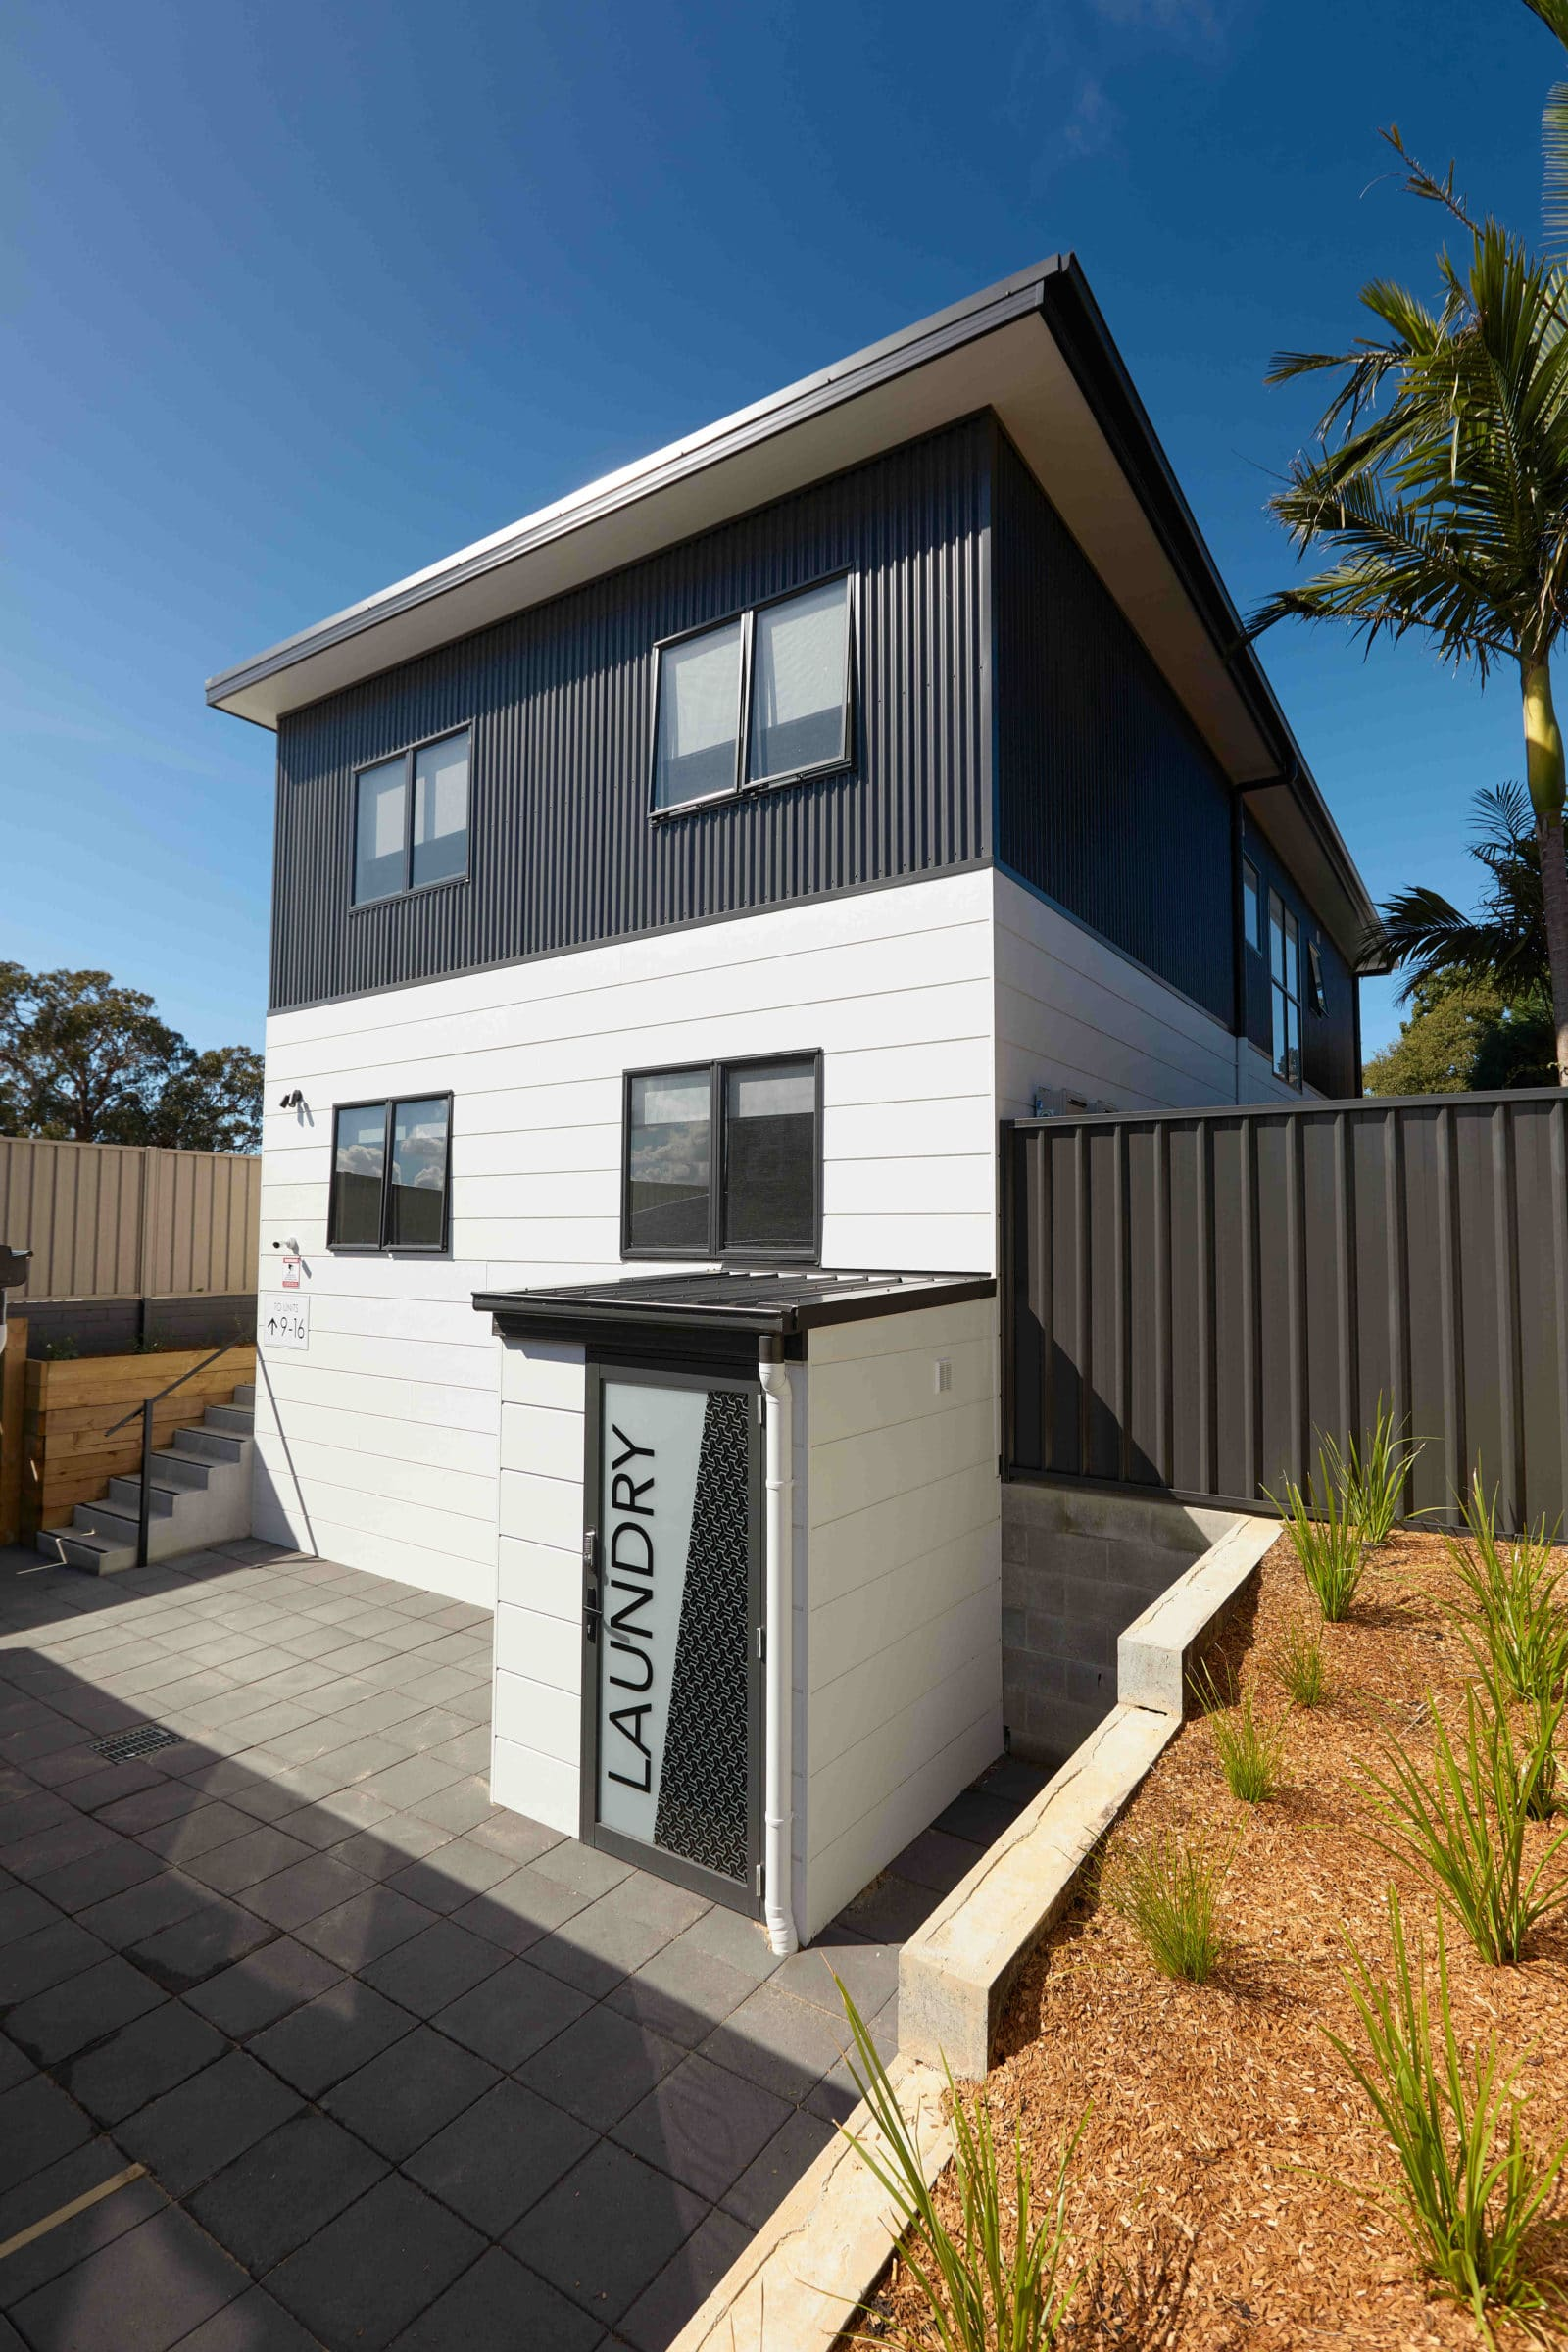 Alfred Apartments - https://www.newcastleapartments.com.au/wp-content/uploads/2019/08/AA-Laundry-2mb-scaled.jpg